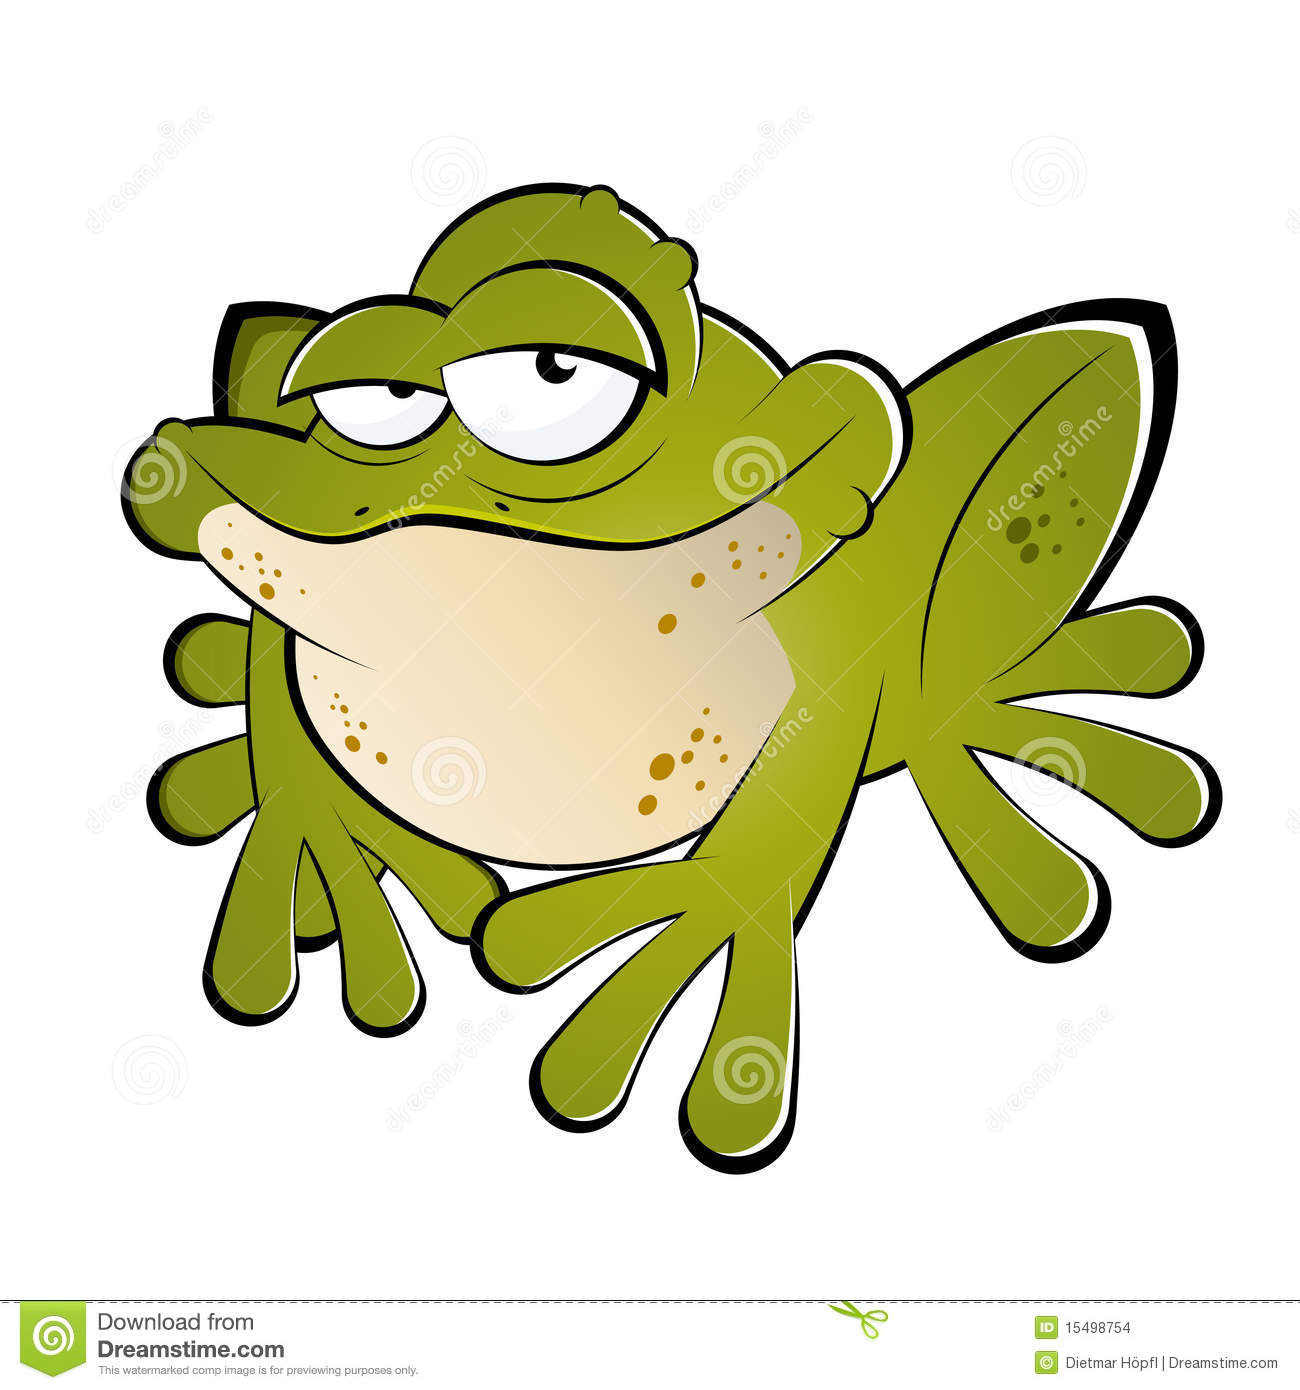 Grenouille verte de dessin anim illustration de vecteur illustration du grimacer regards - Dessin de grenouille marrante ...